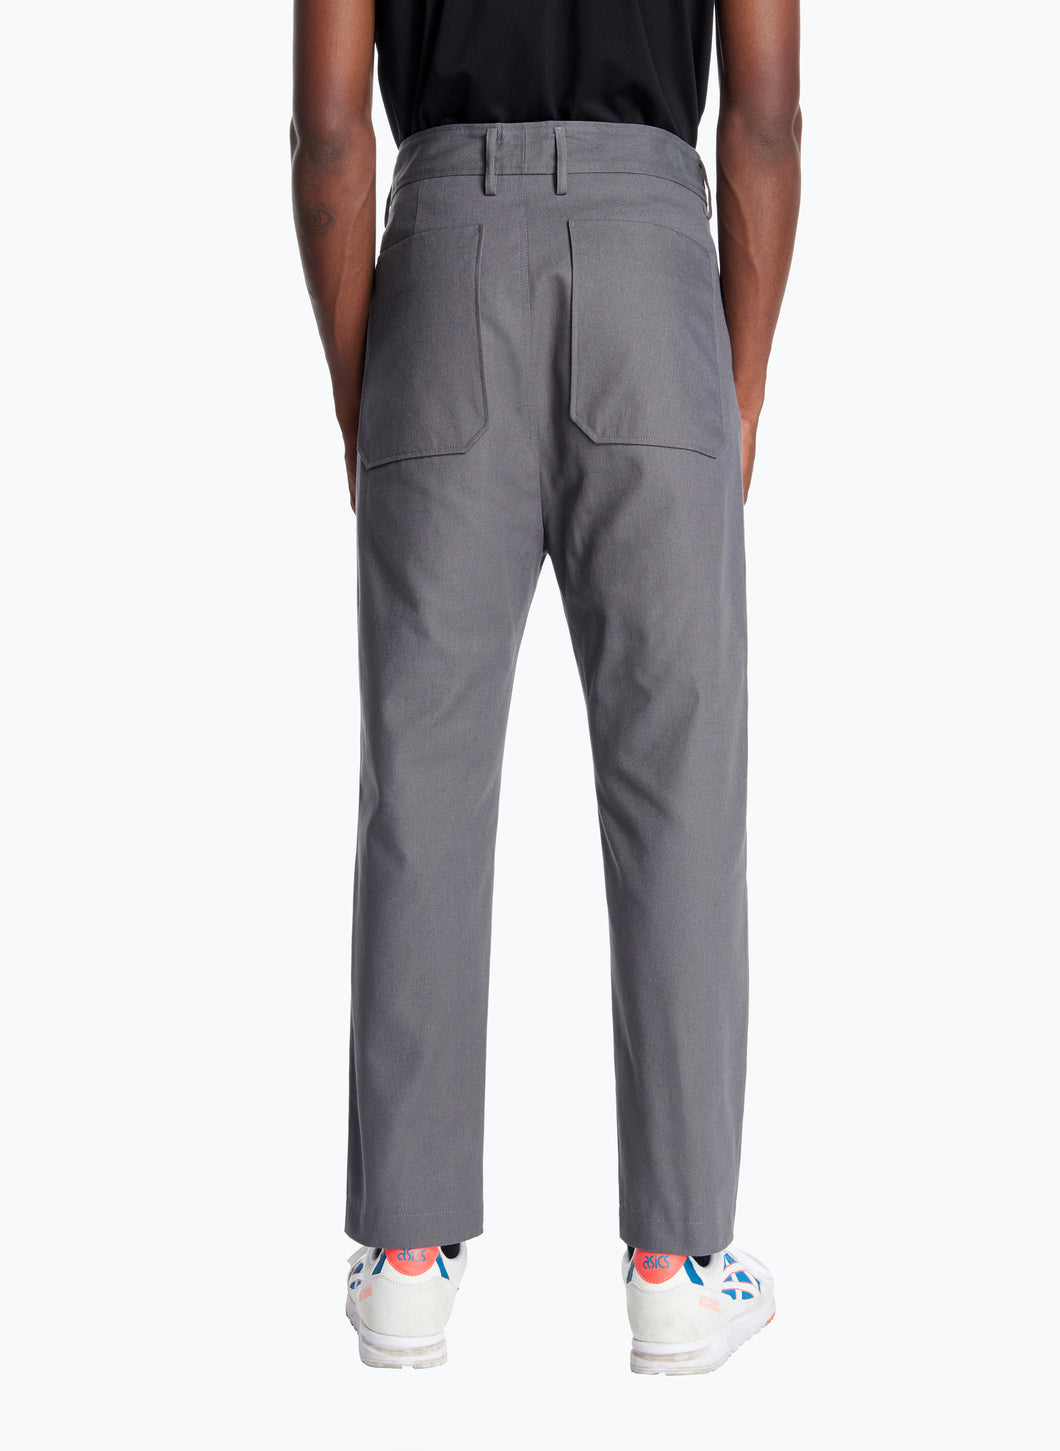 High-Waisted Pants with Reinforced Knees in Grey Canvas